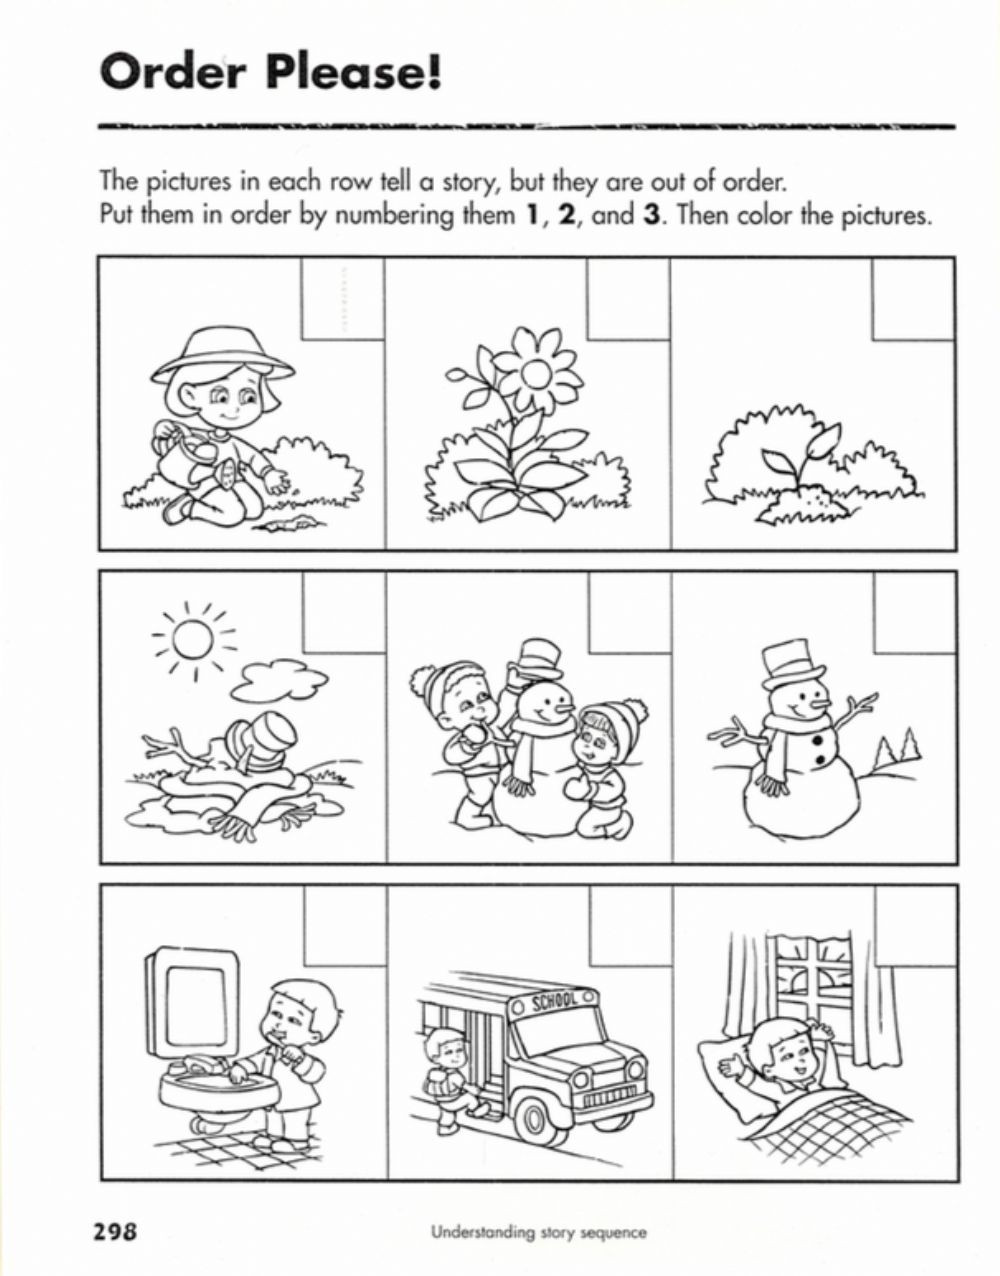 Sequencing events Worksheets Grade 6 Sequences Of events Interactive Worksheet